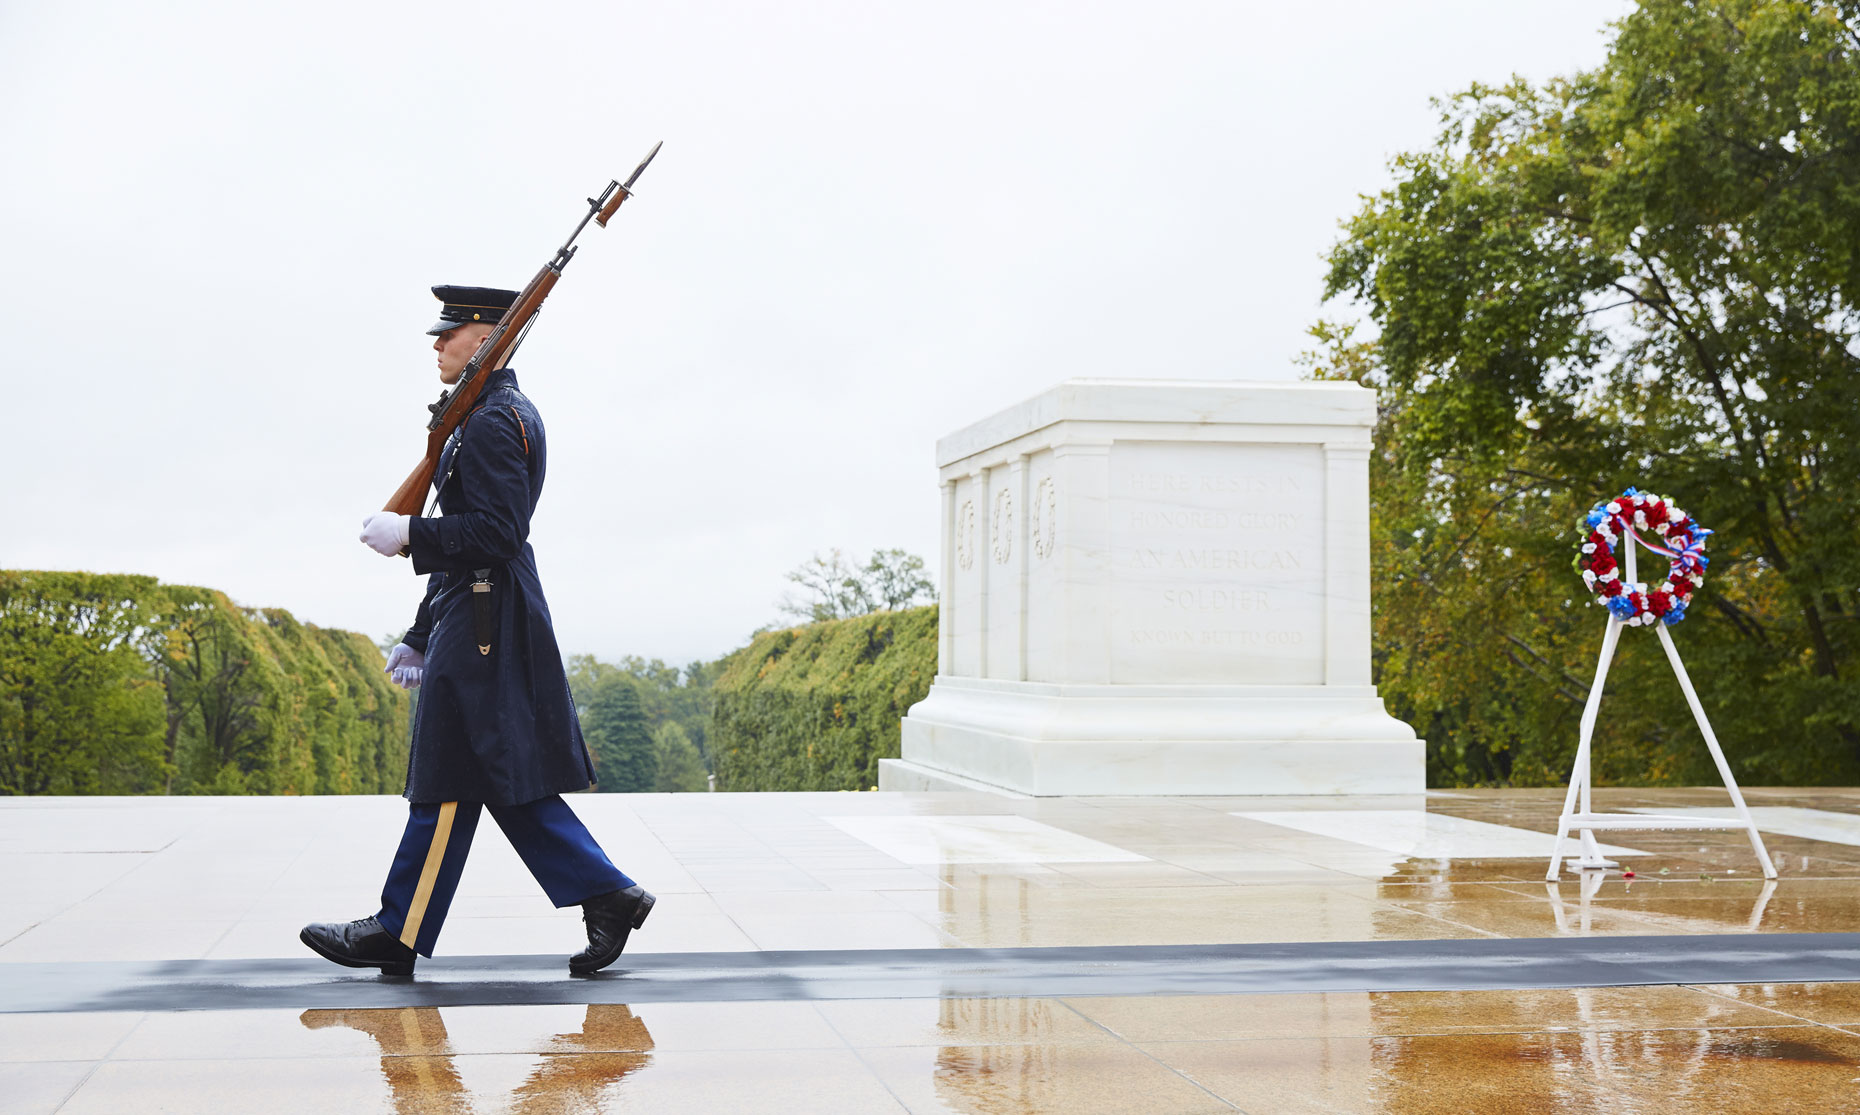 Honor Guard/marching/tomb of the unknown soldier/Honor Flight